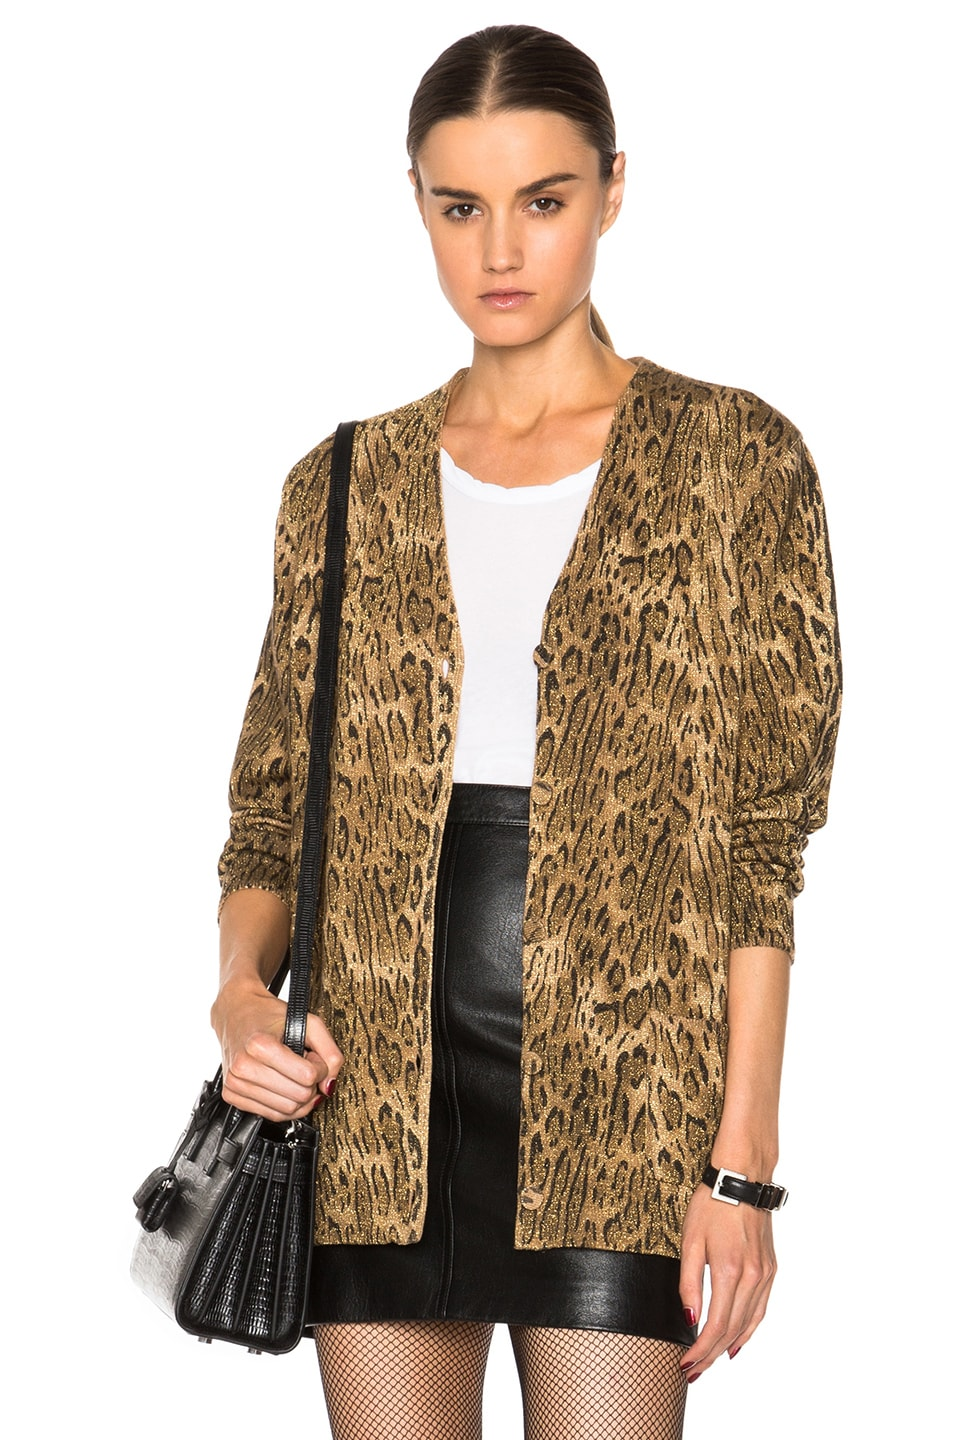 Saint Laurent Ocelot Print Cardigan in Camel & Black | FWRD